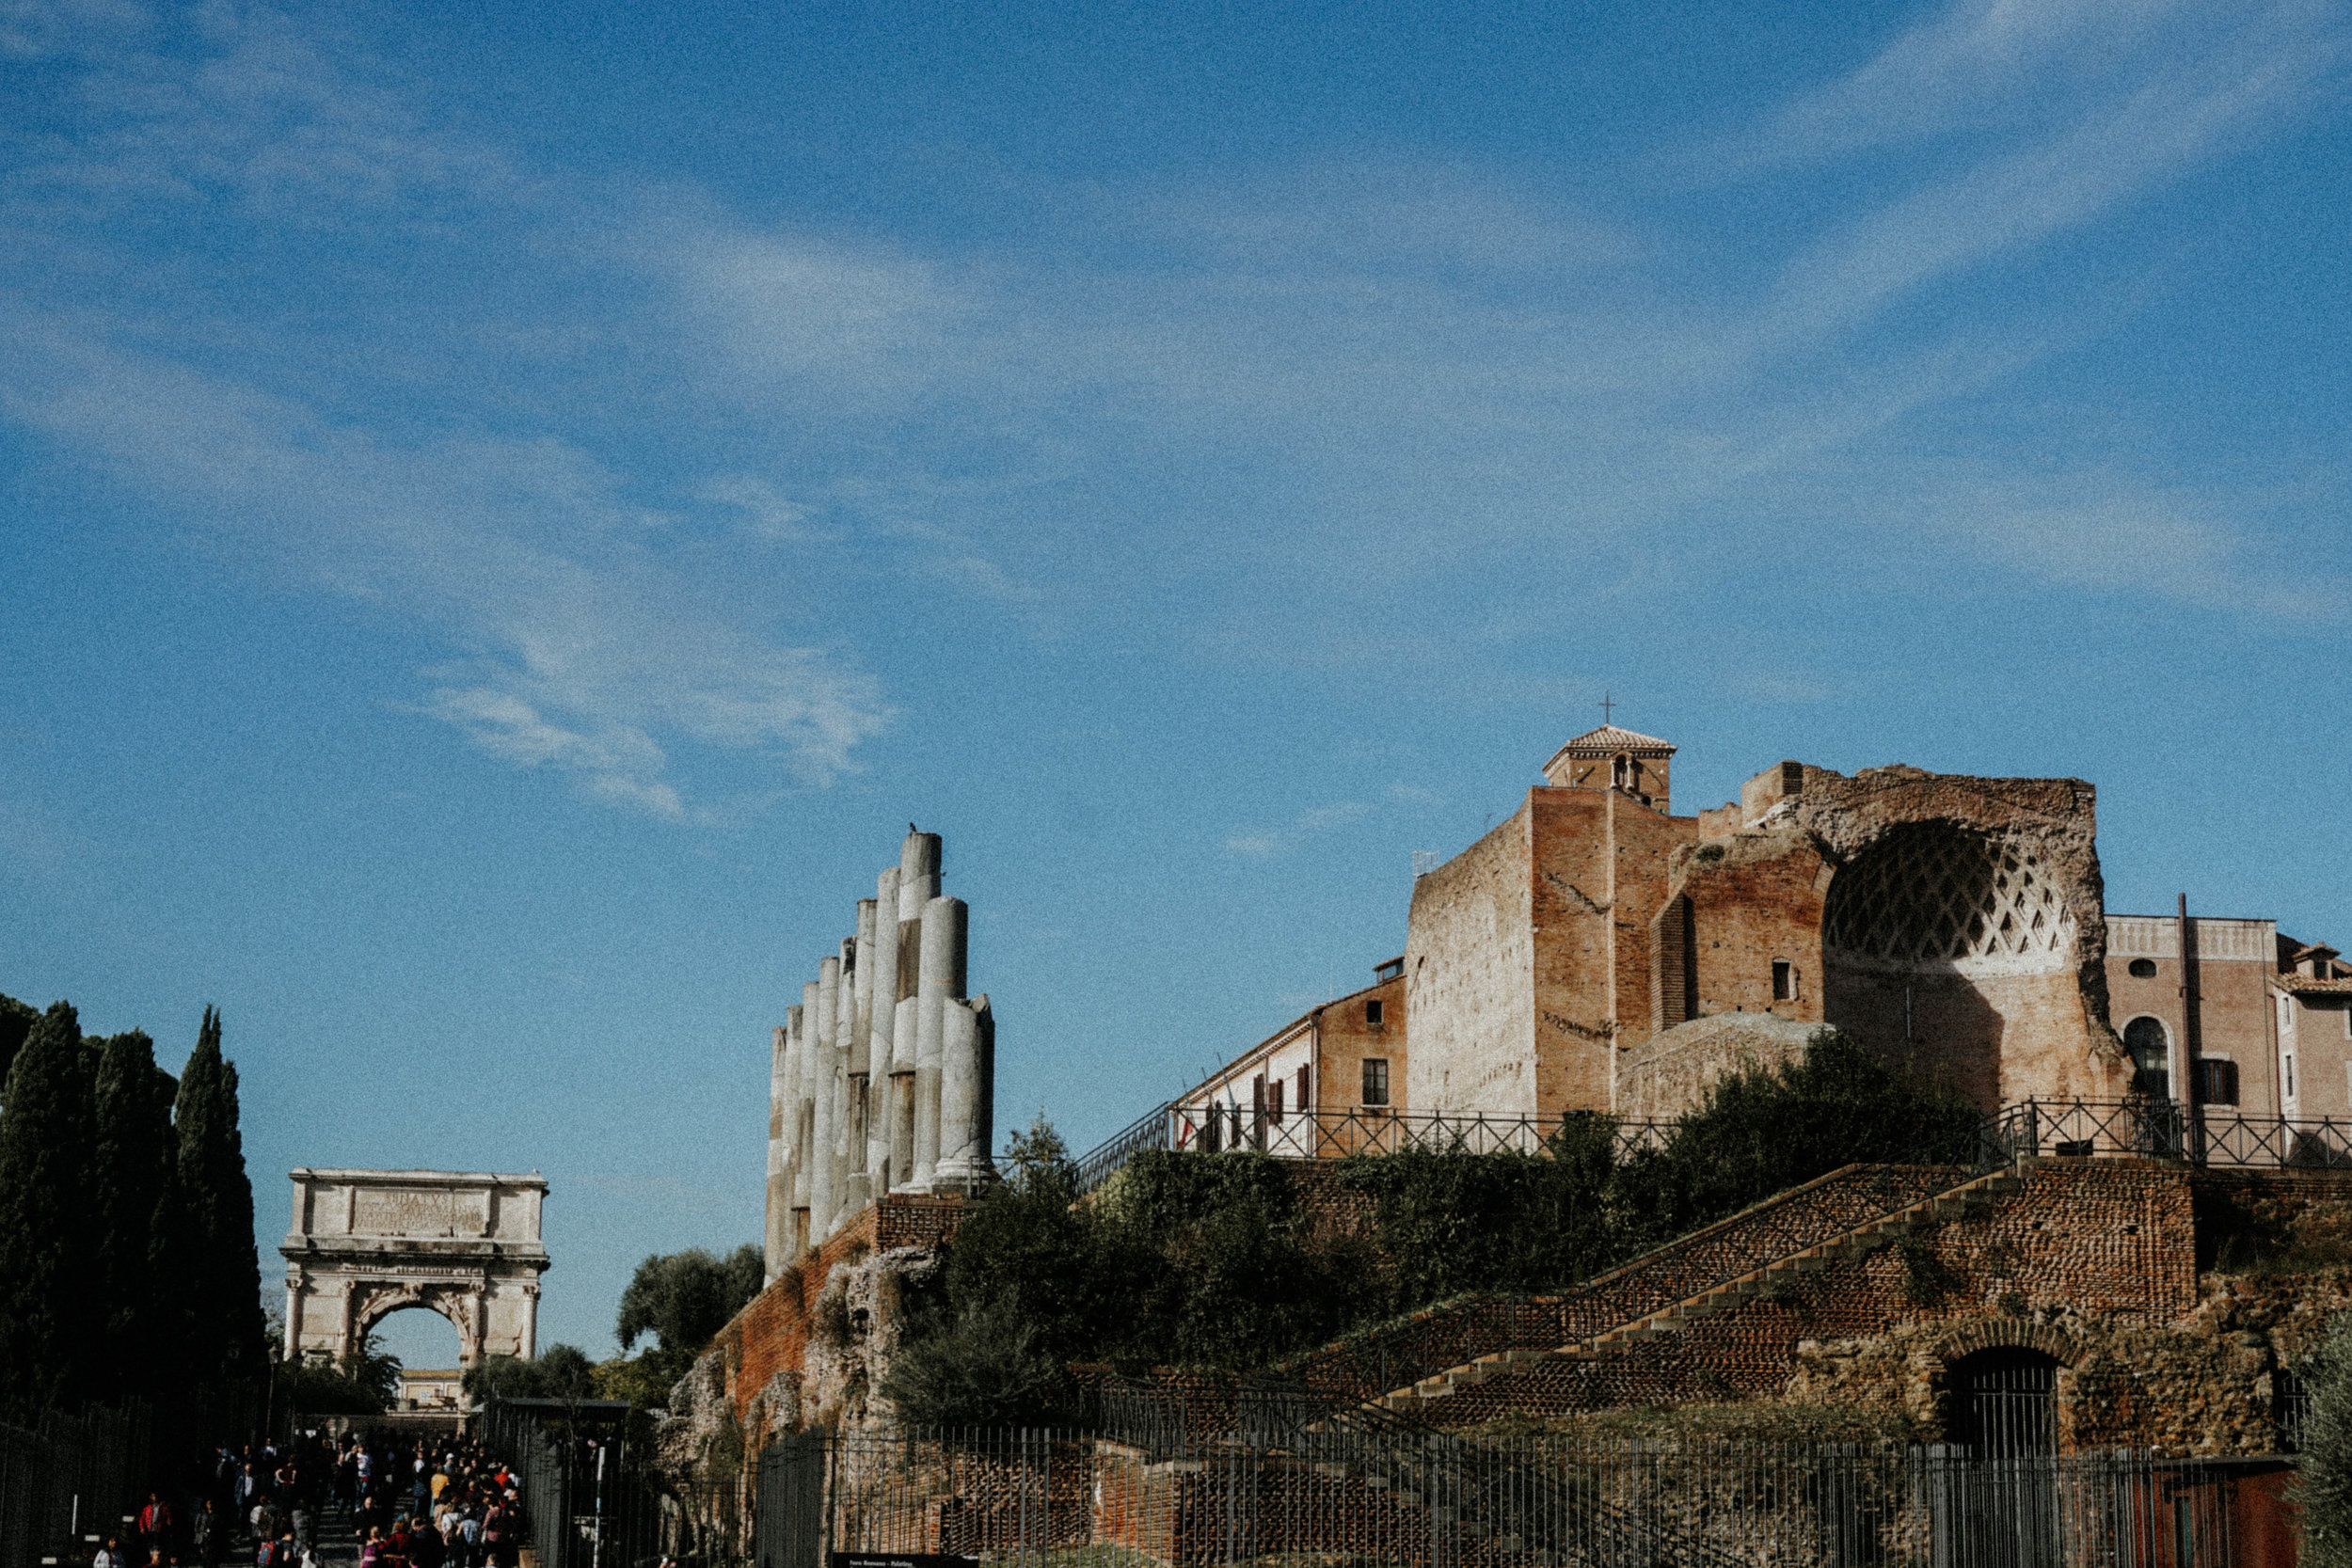 Palatine Hill from the Colosseum